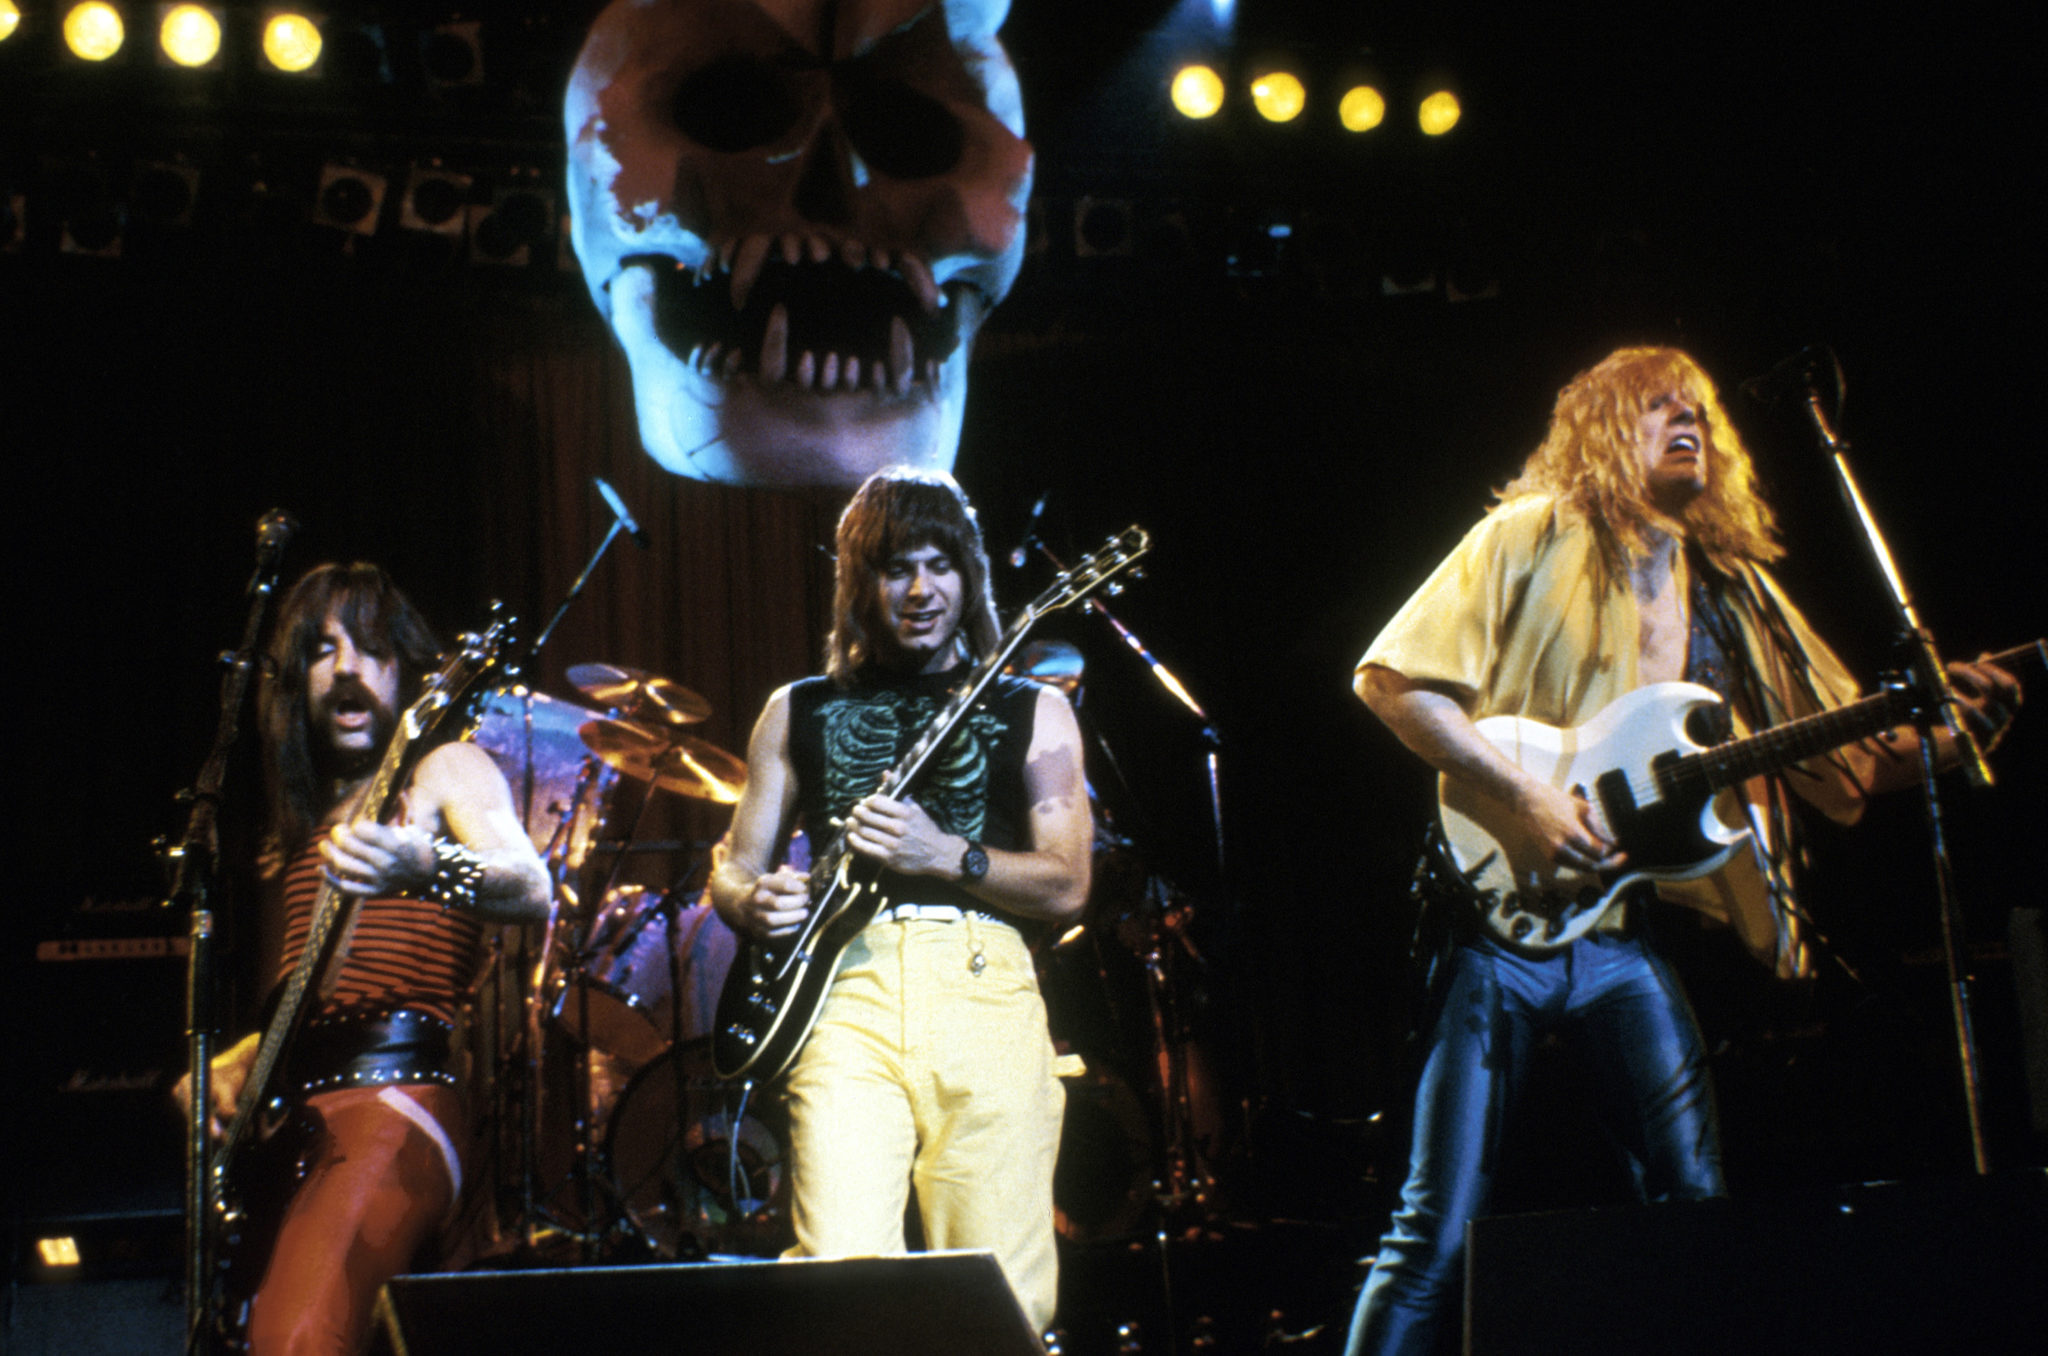 Filme der 80er: Harry Shearer als Derek Smalls, Christopher Guest als Nigel Tufnel und Michael McKean als David St. Hubbins treten in This Is Spinal Tap als Rockband auf.